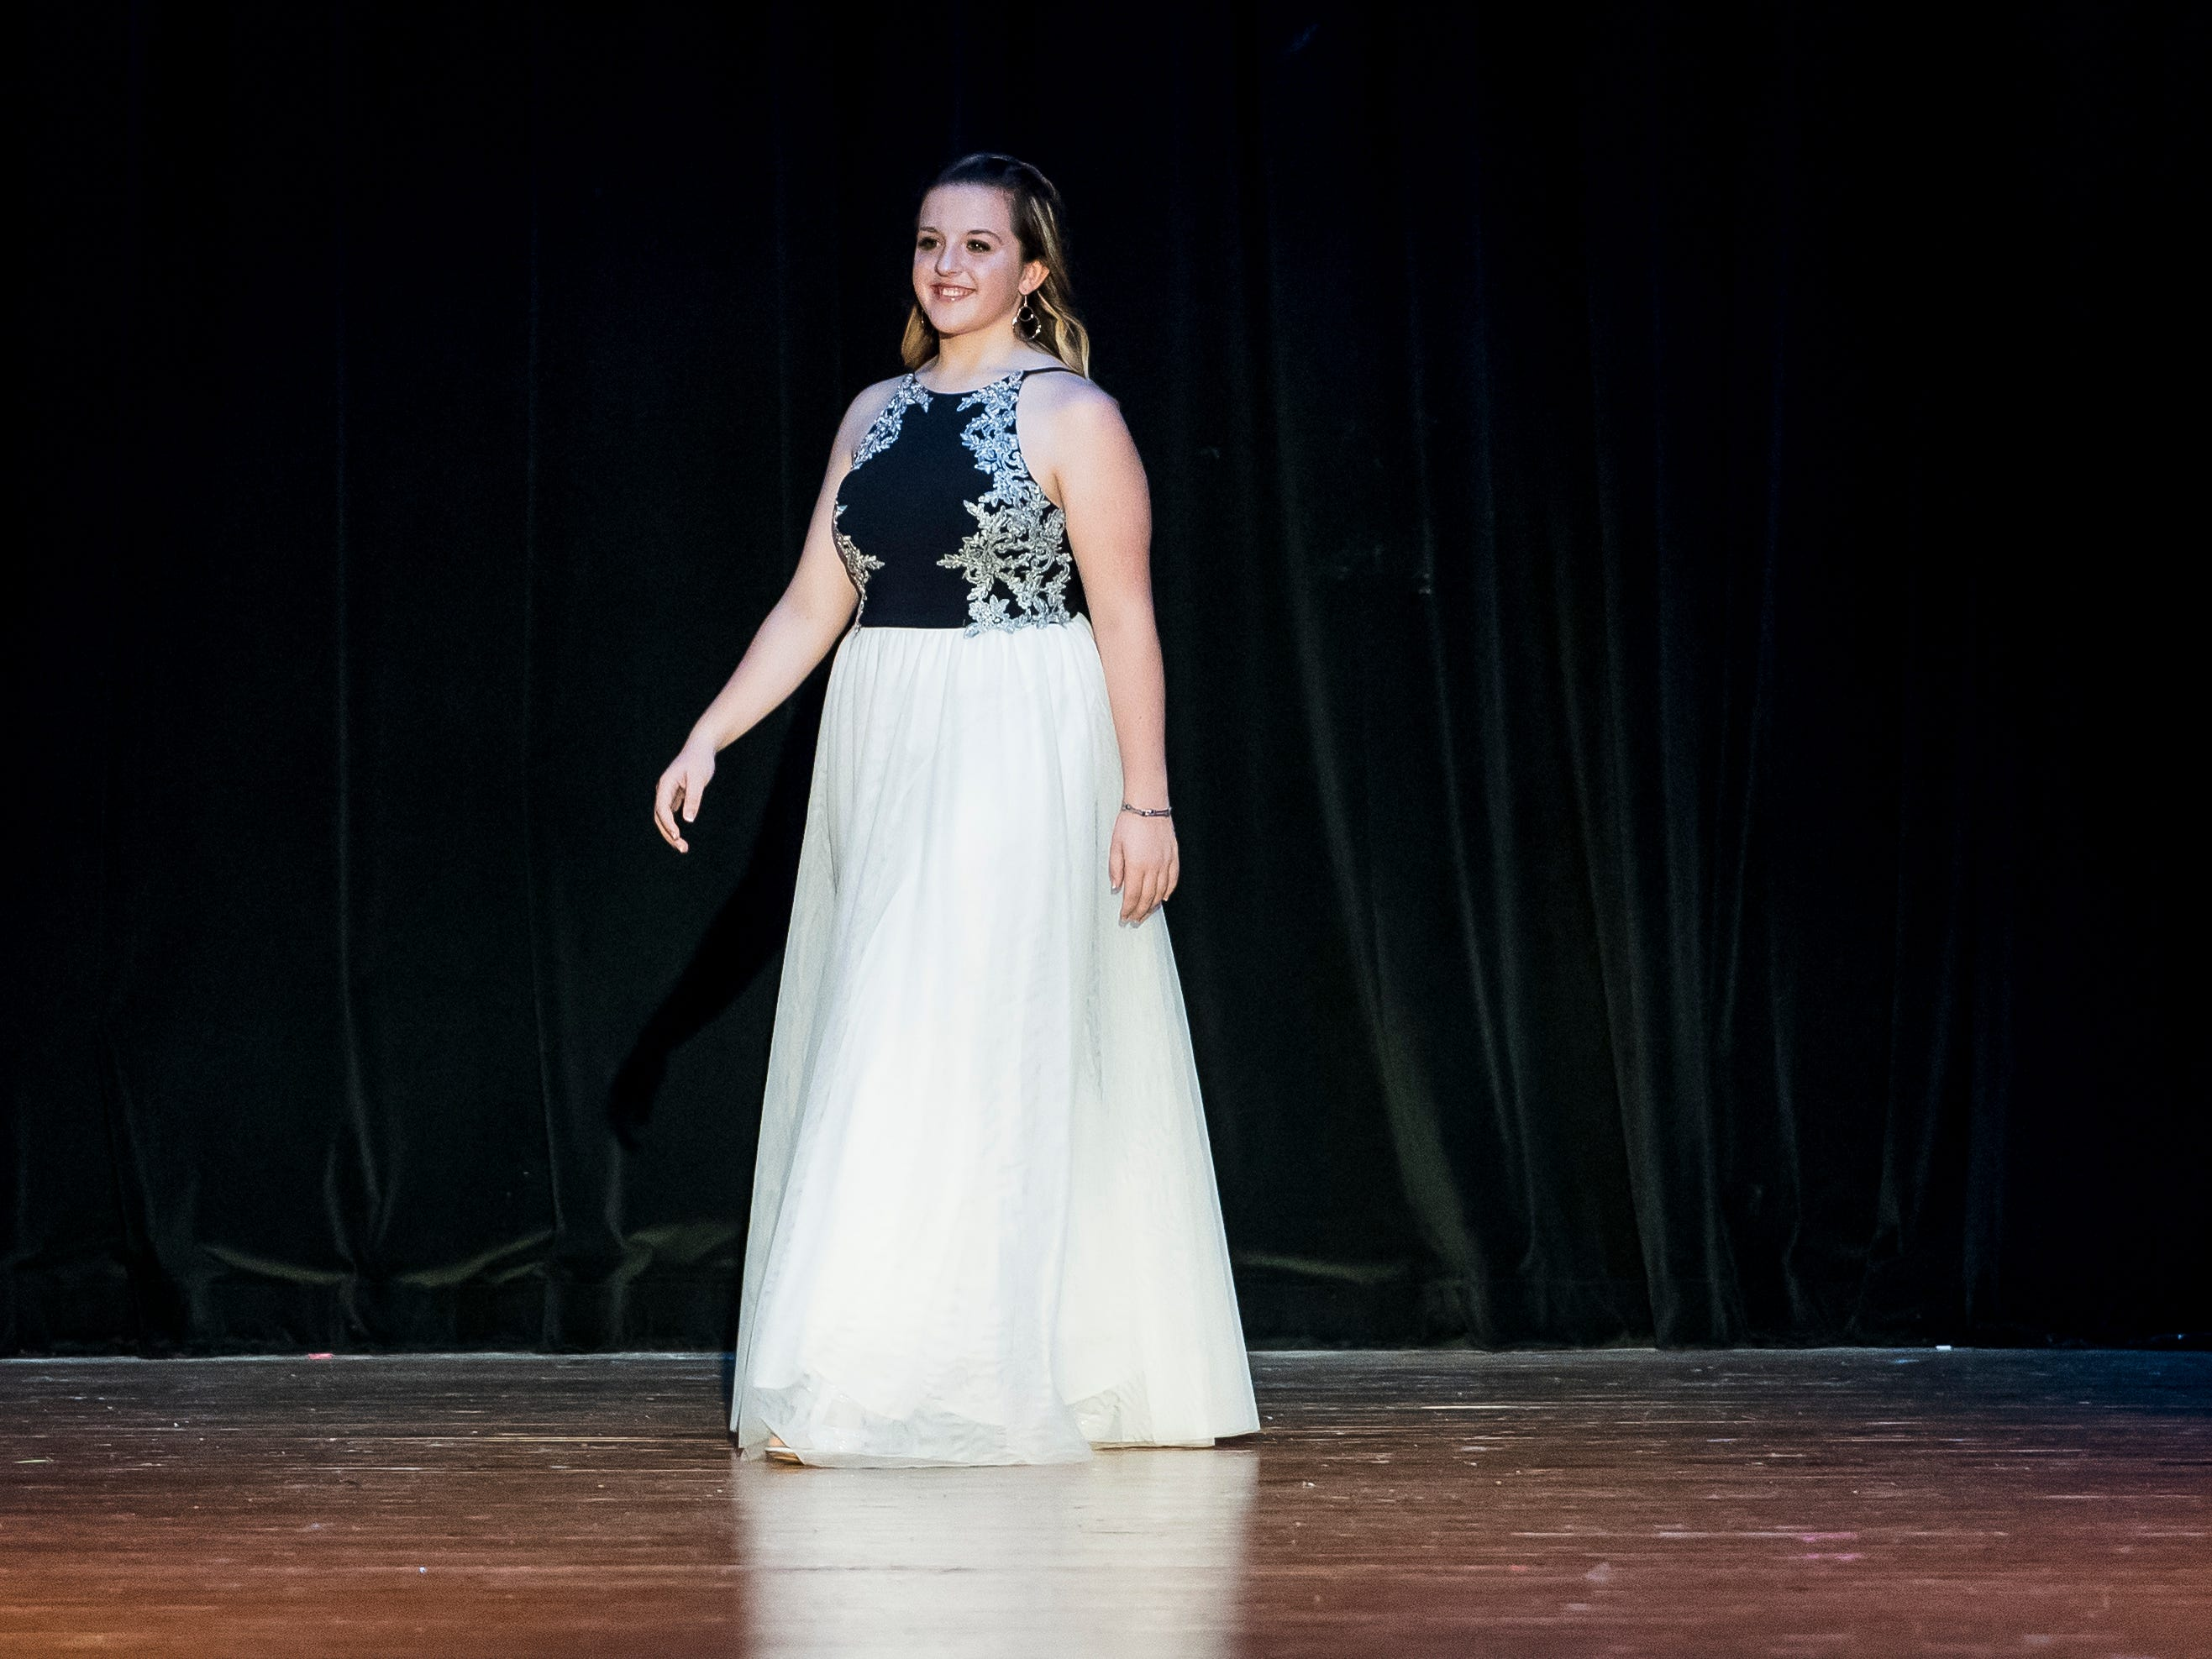 Mackenzie Buckley walks on stage during the evening gown competition in the 50th Miss Hanover Area pageant on Monday, October 22, 2018.